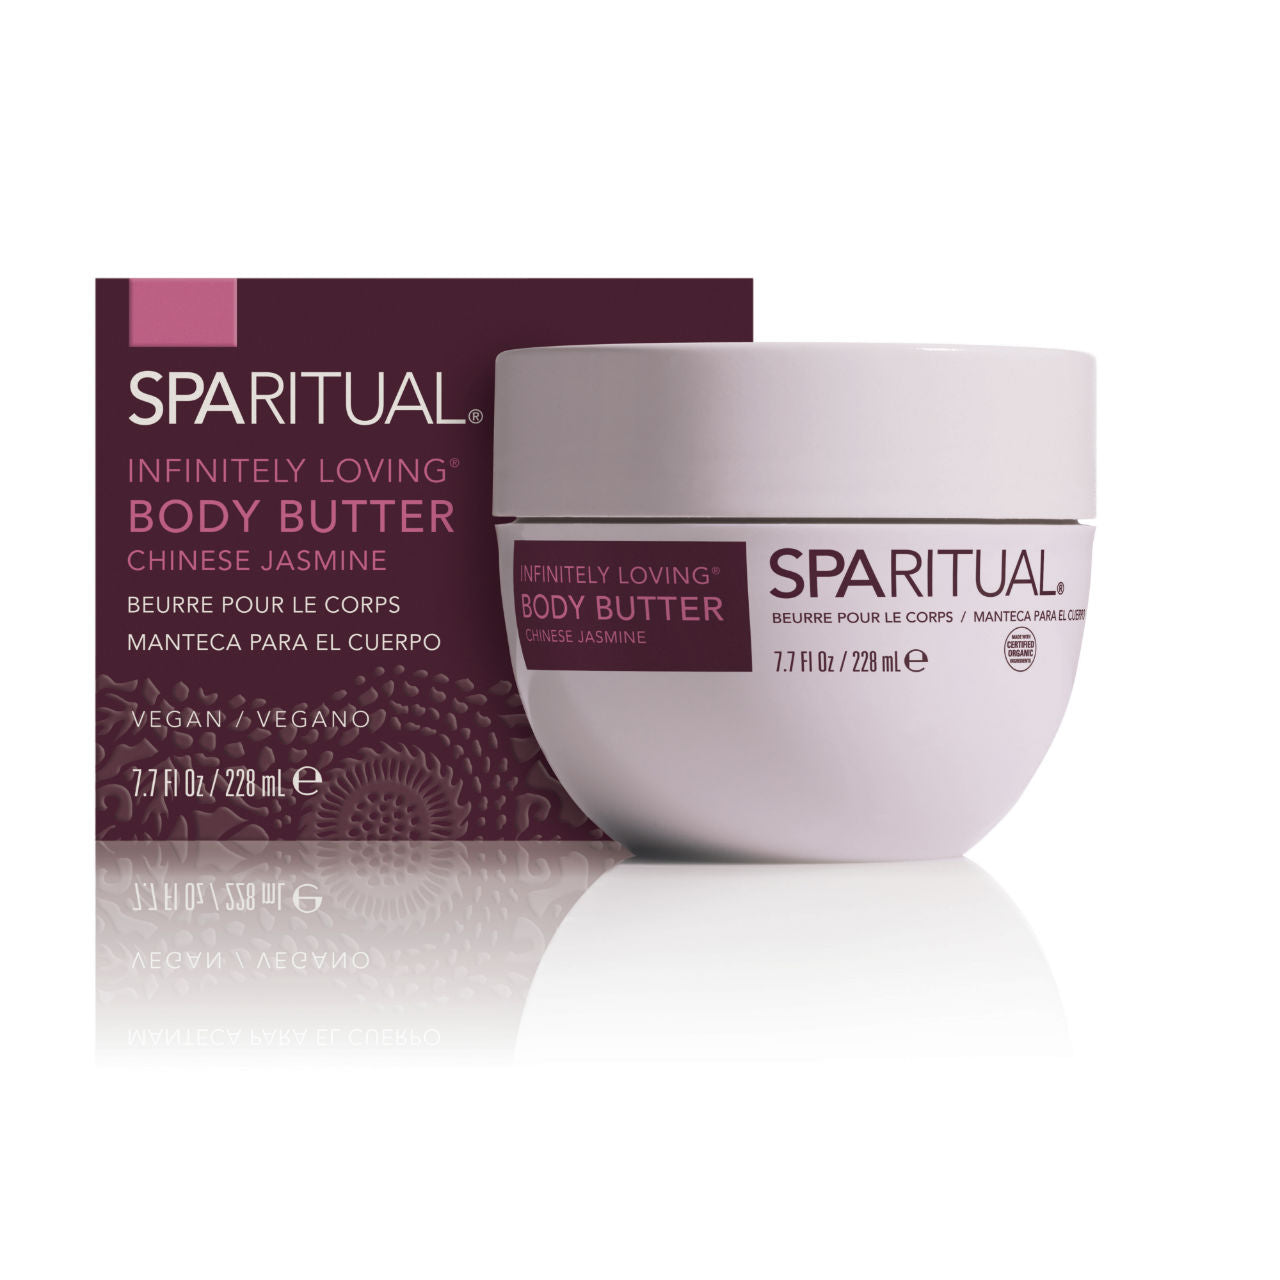 SPARITUAL Infinitely Loving Body Butter Box